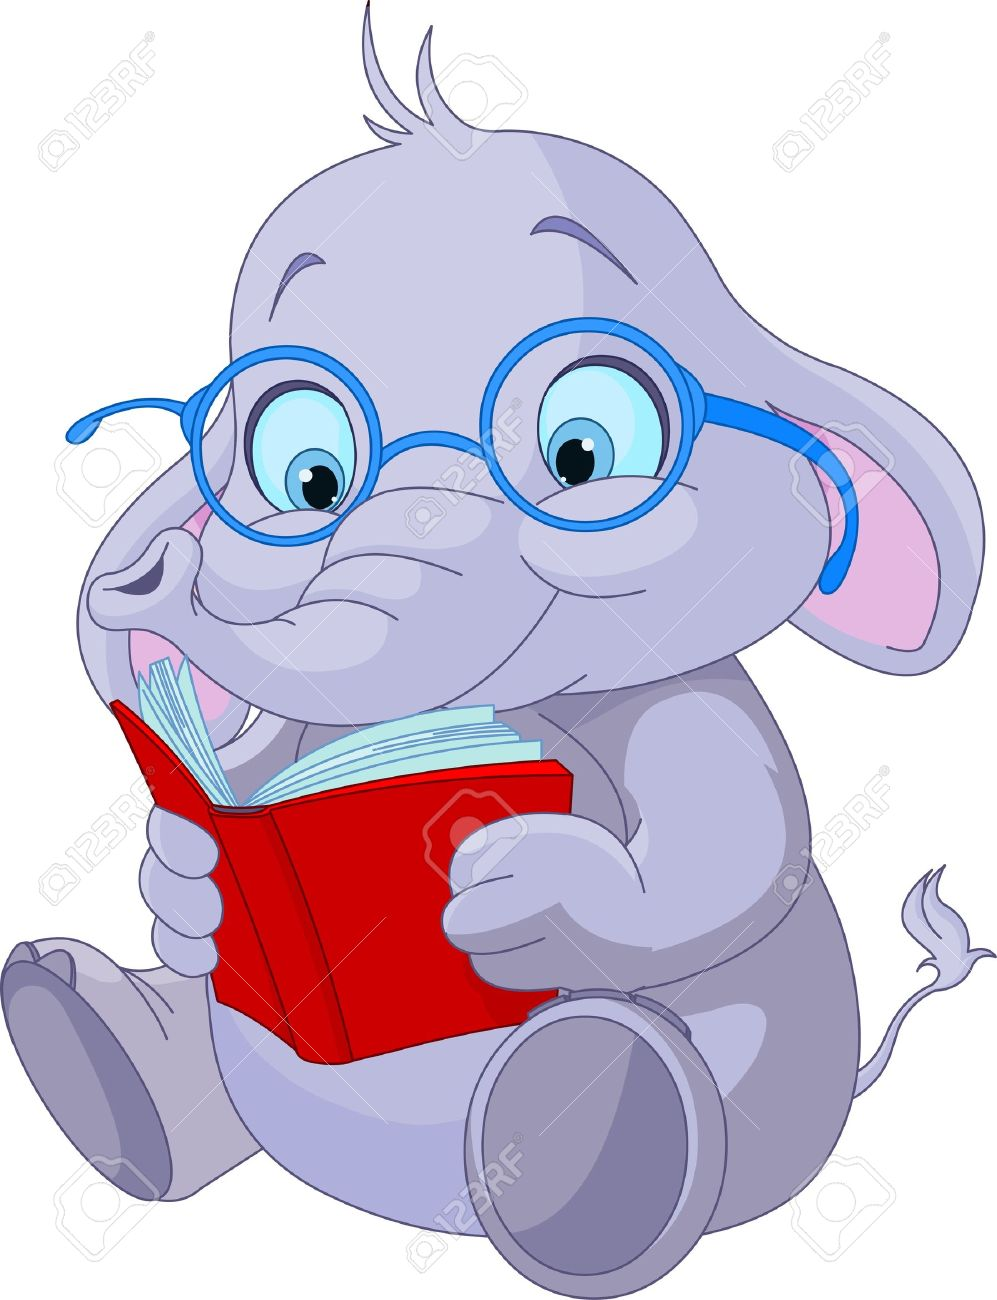 Cute elephant with glasses reading a book.